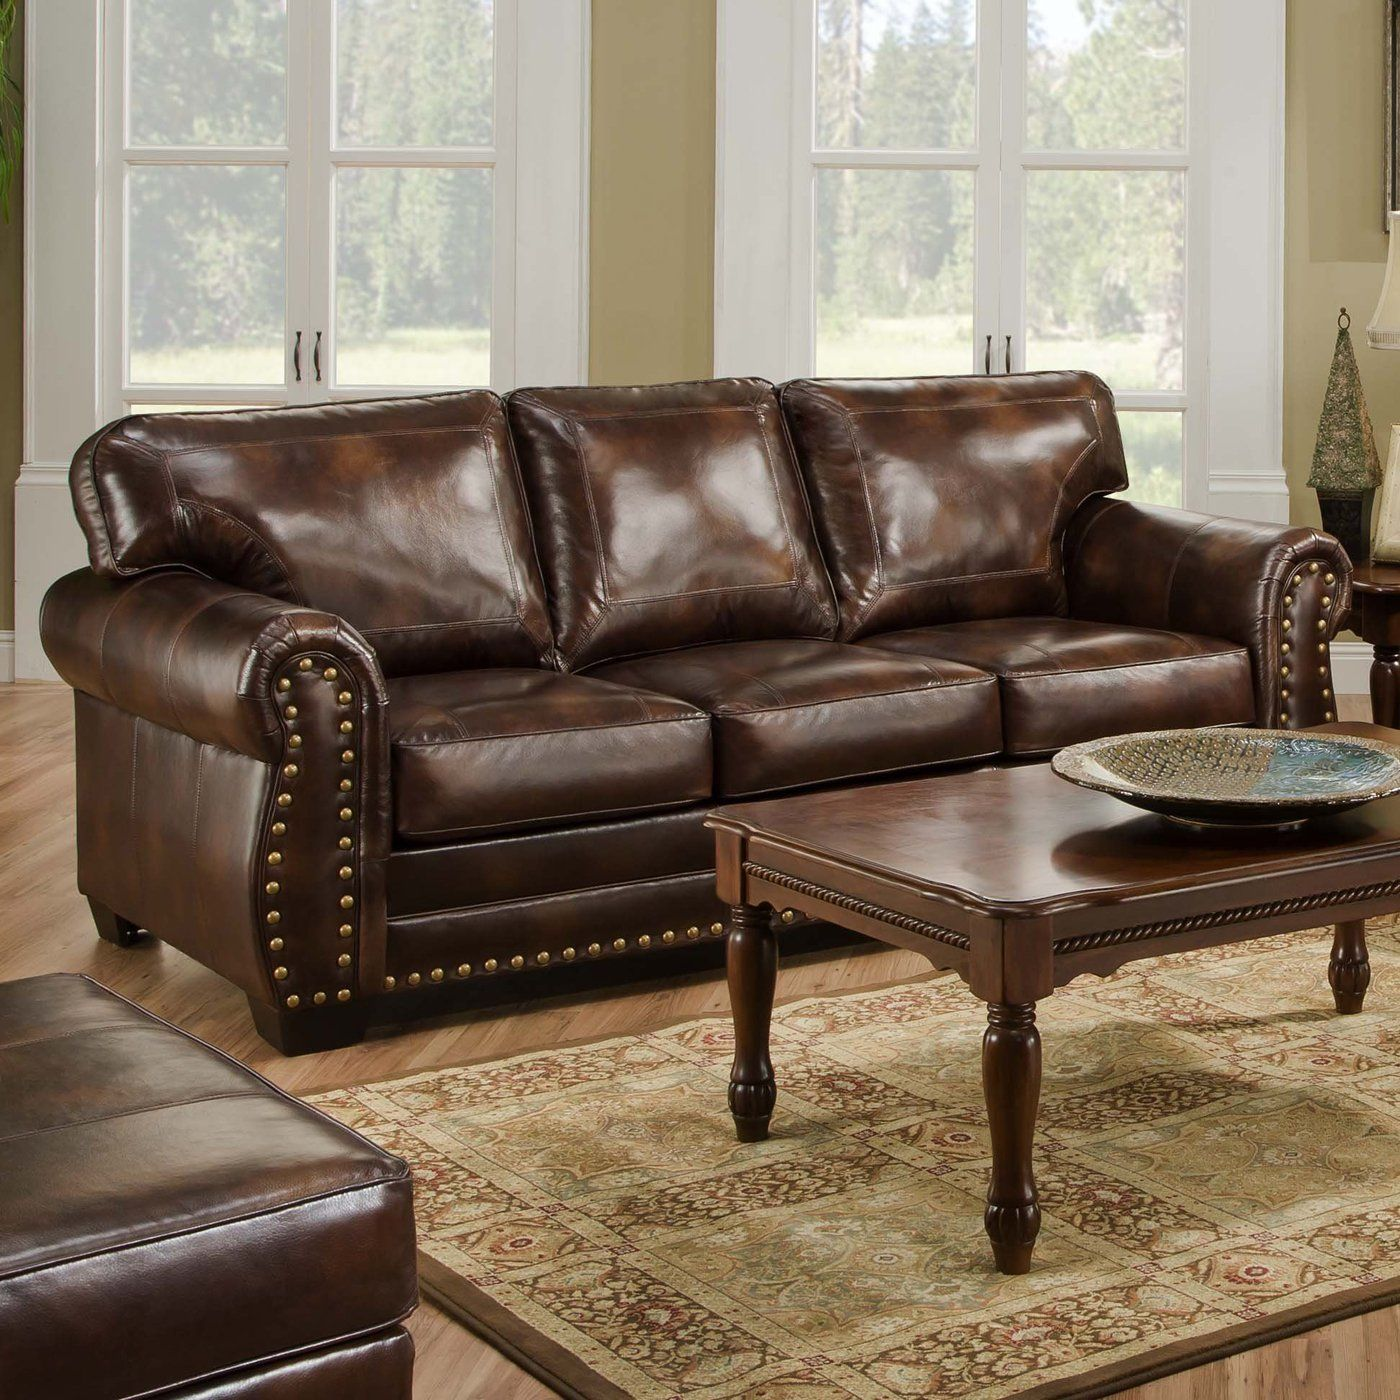 leather sleeper sofa queen size w nailhead trim Living Room